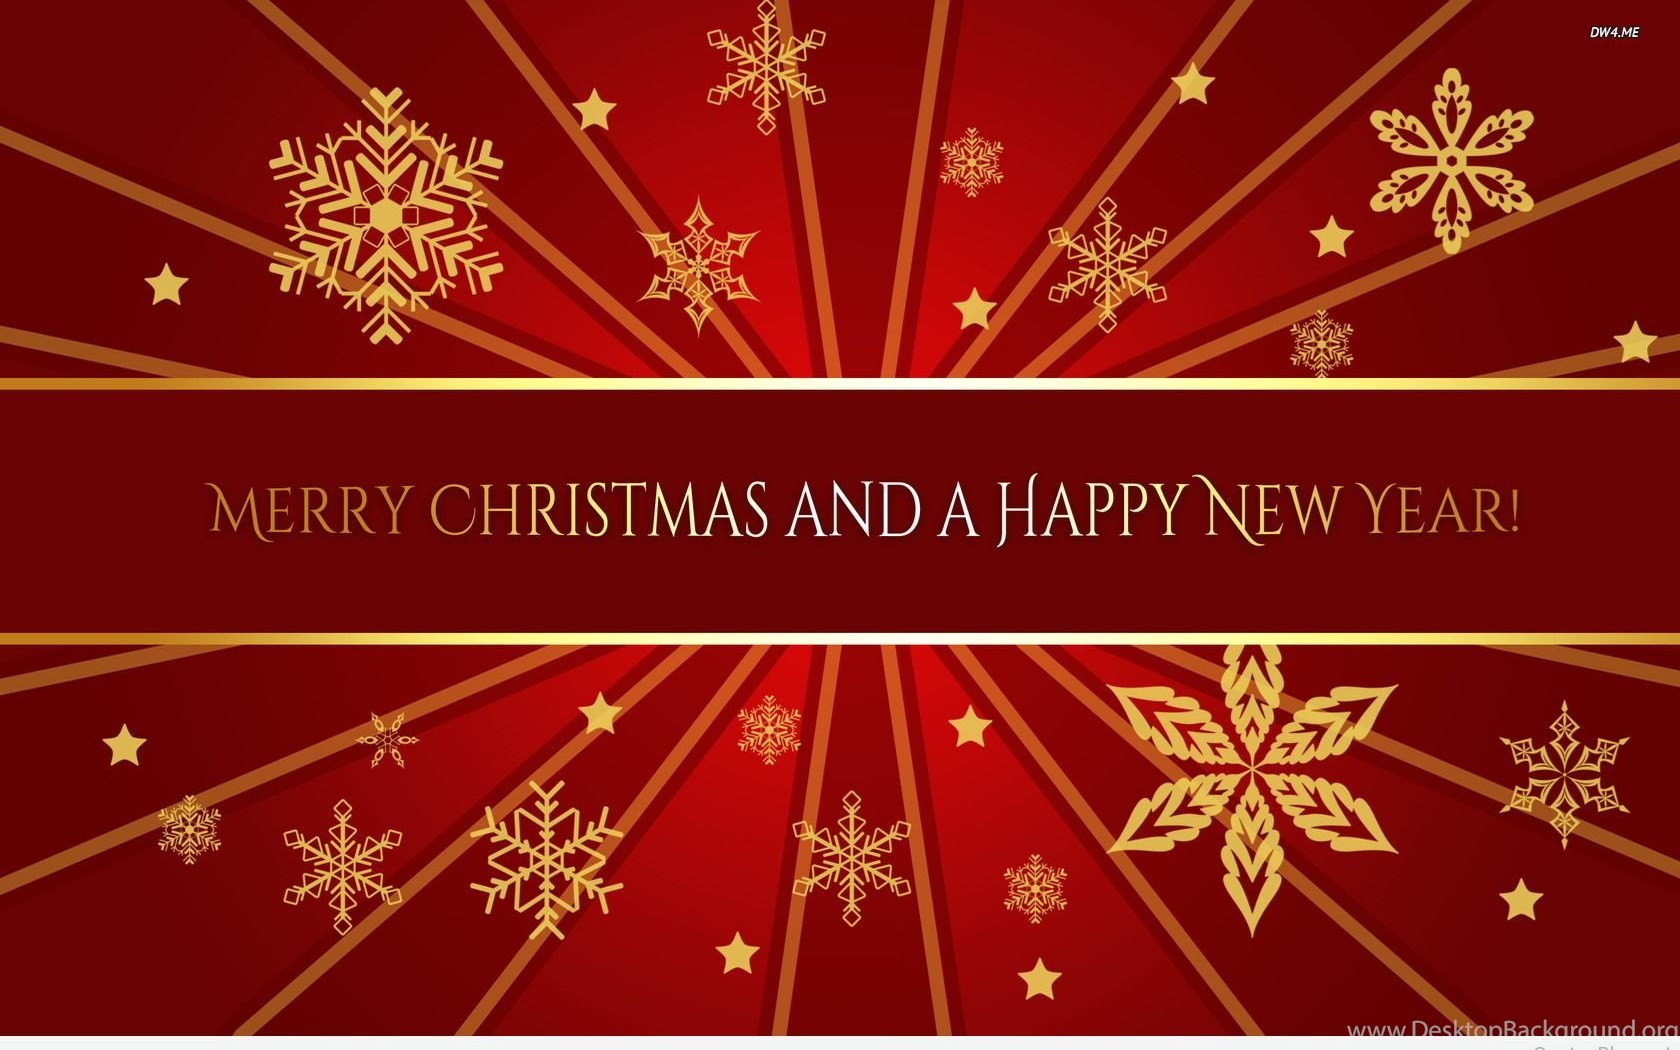 Best Merry Christmas Happy New Year Quotes 2016 Desktop Background